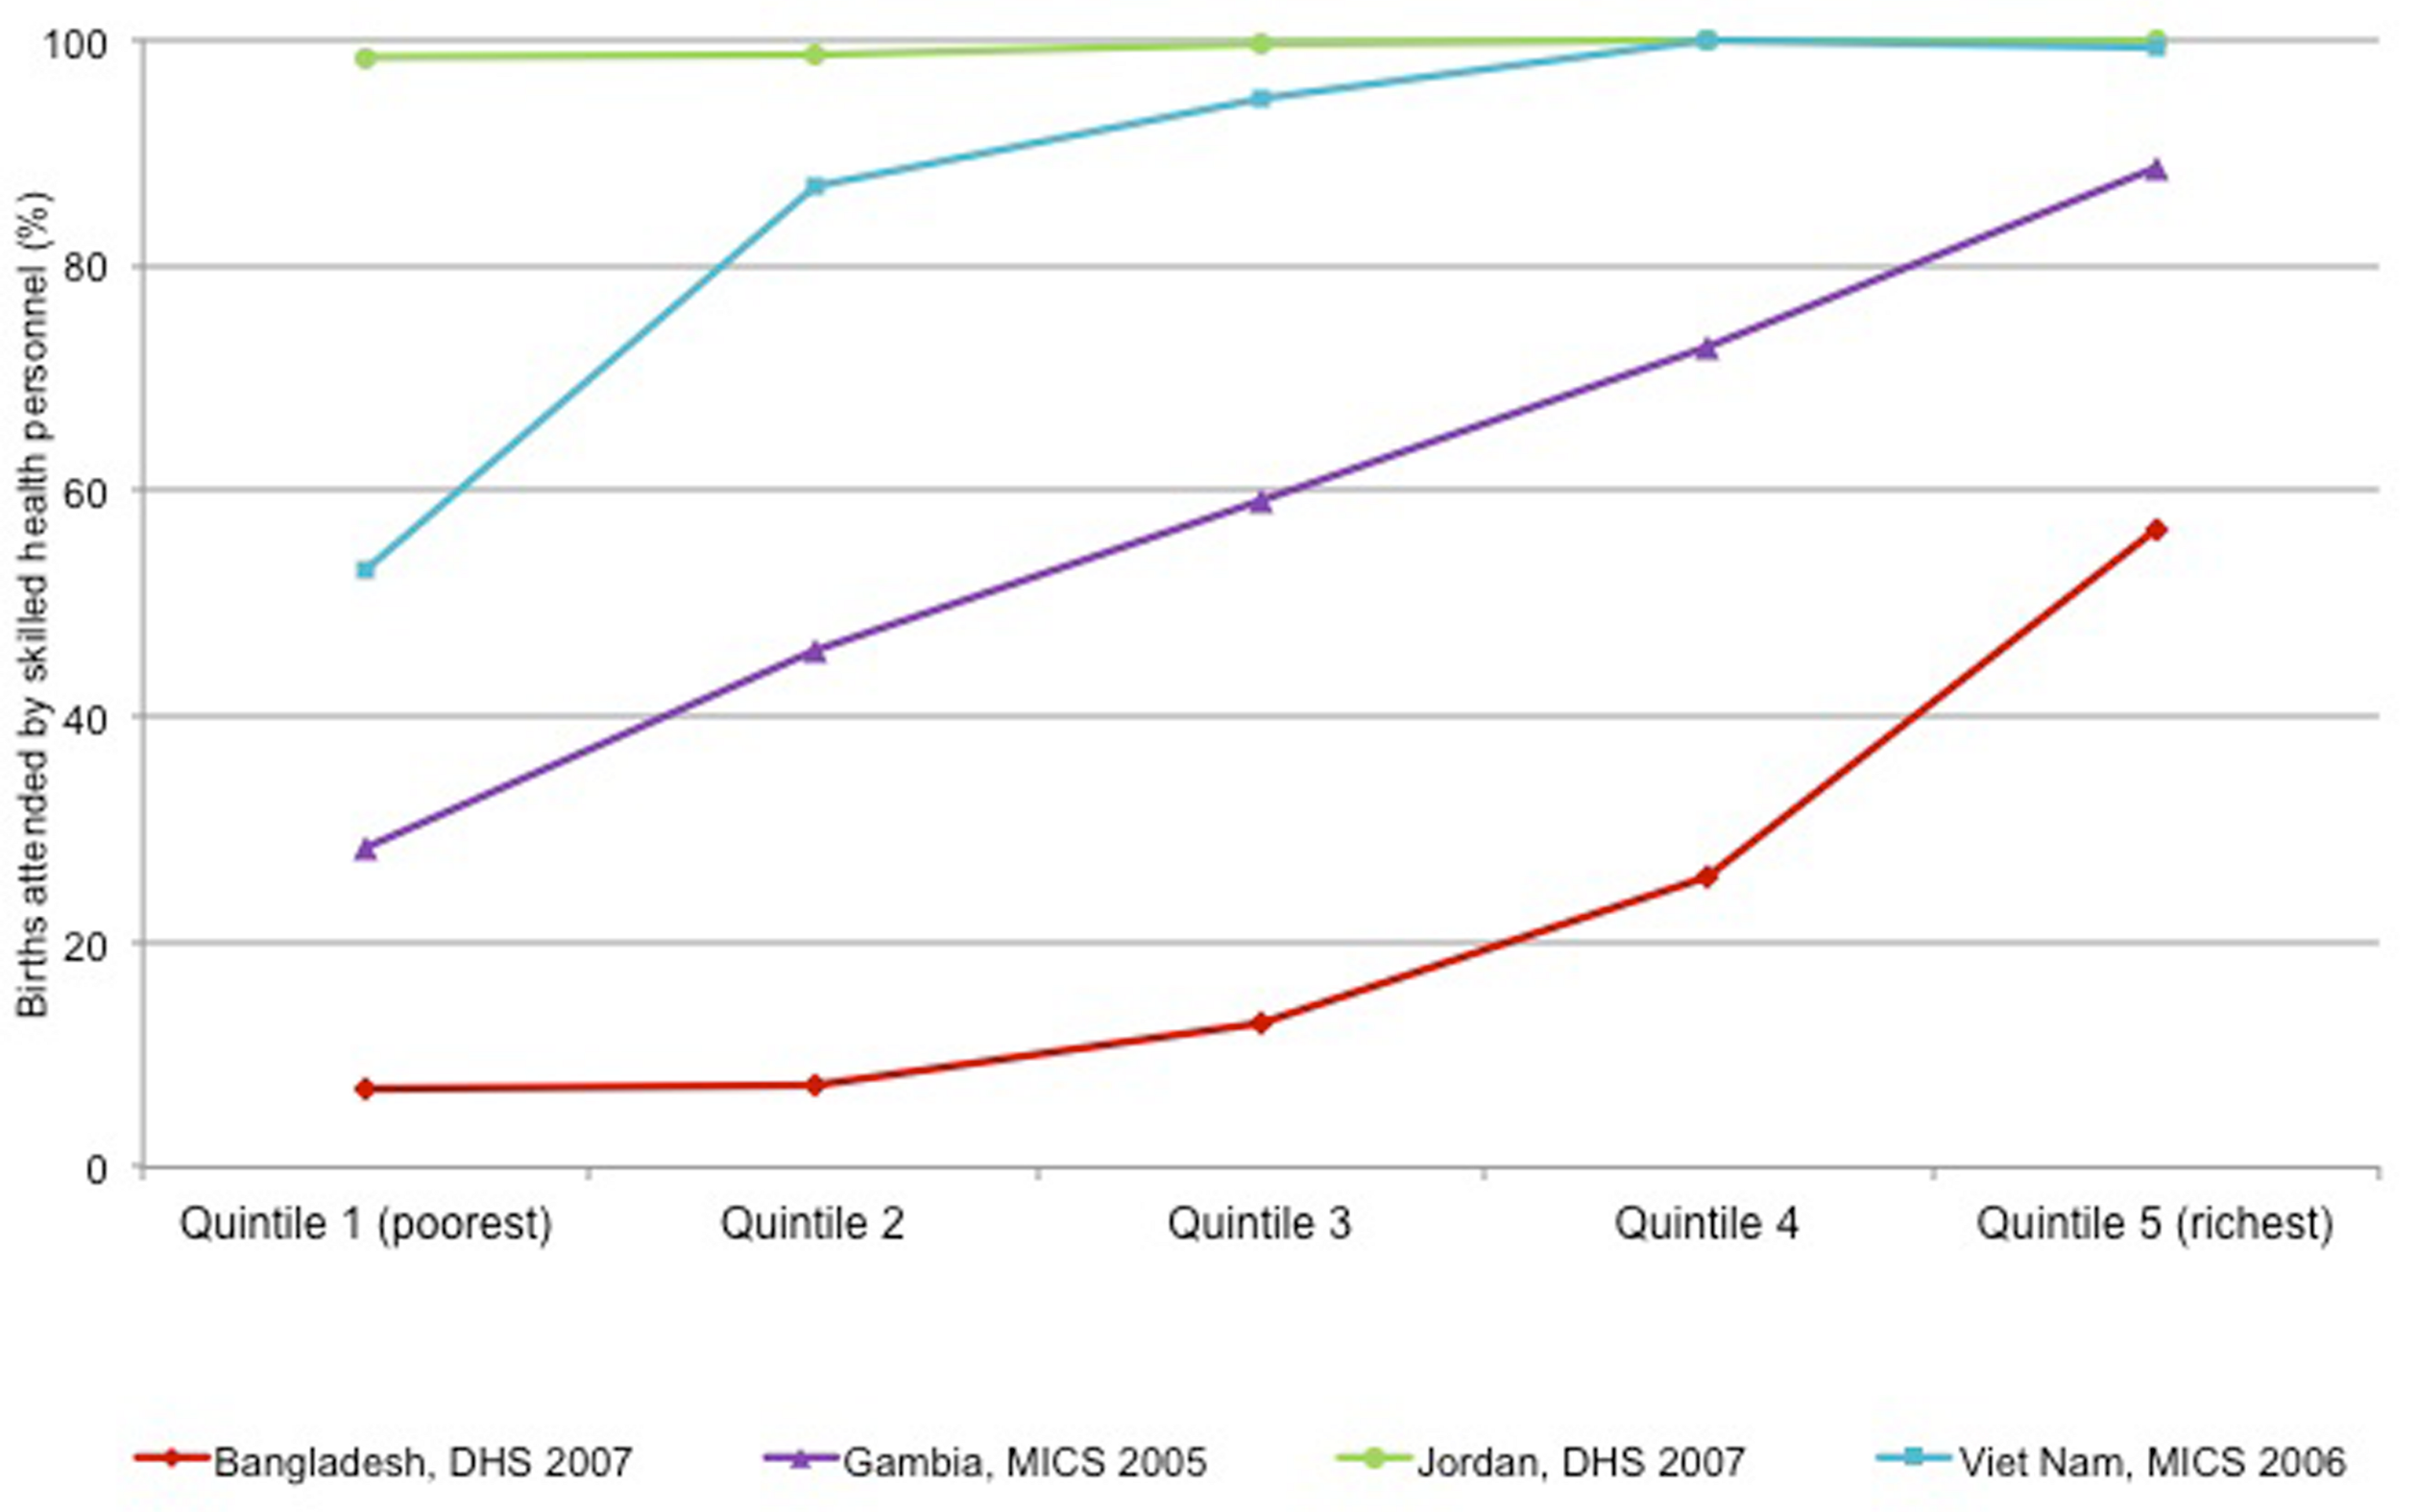 Patterns of inequality by wealth quintile, illustrated using births attended by skilled health personnel.